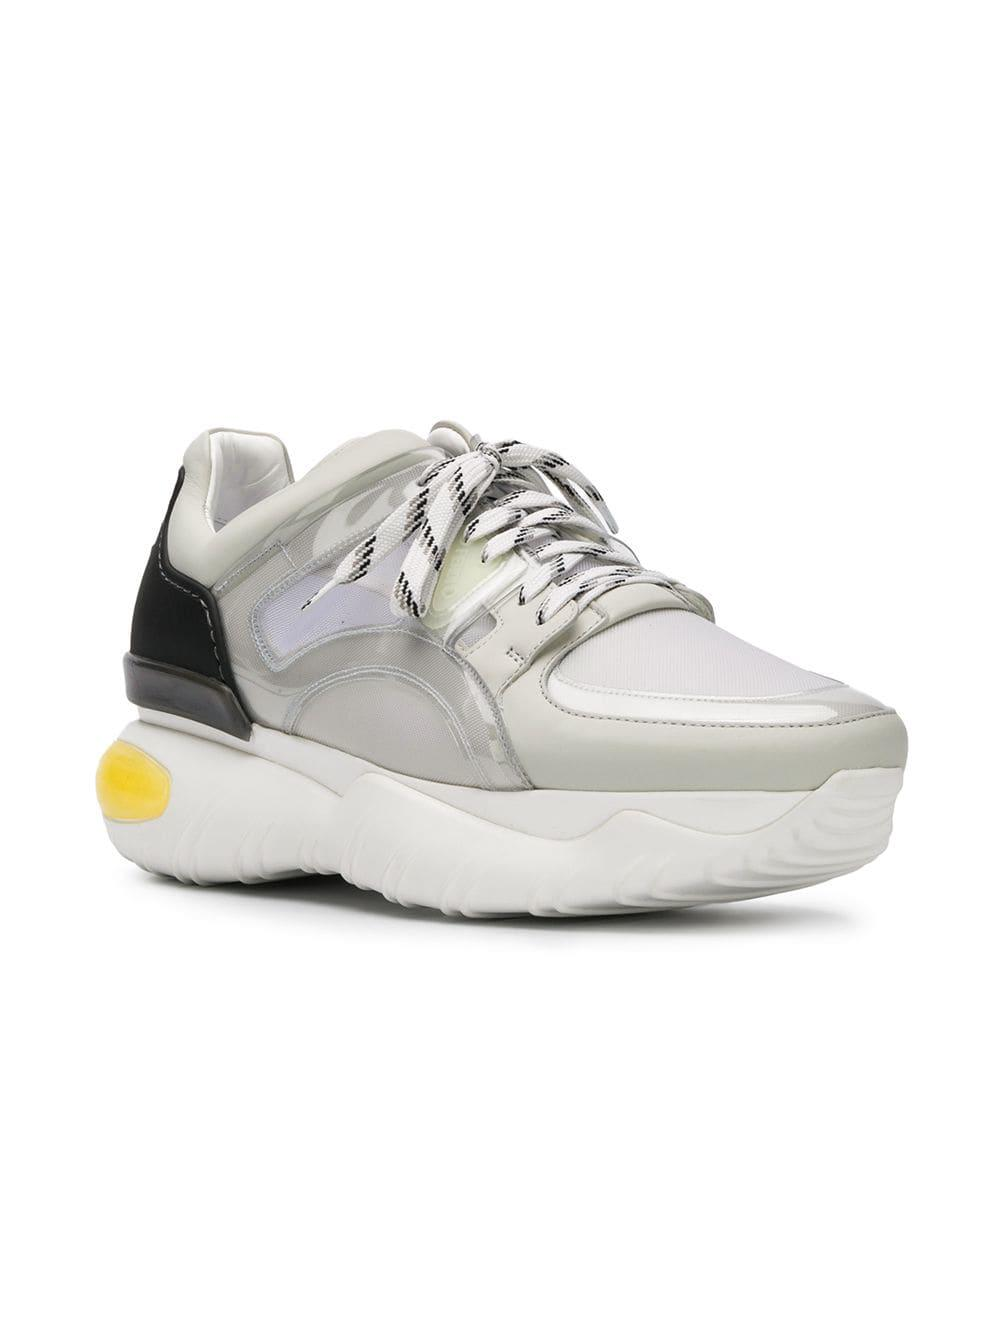 48321368e Fendi Elevated Sole Runner Sneakers in Gray for Men - Save 46% - Lyst